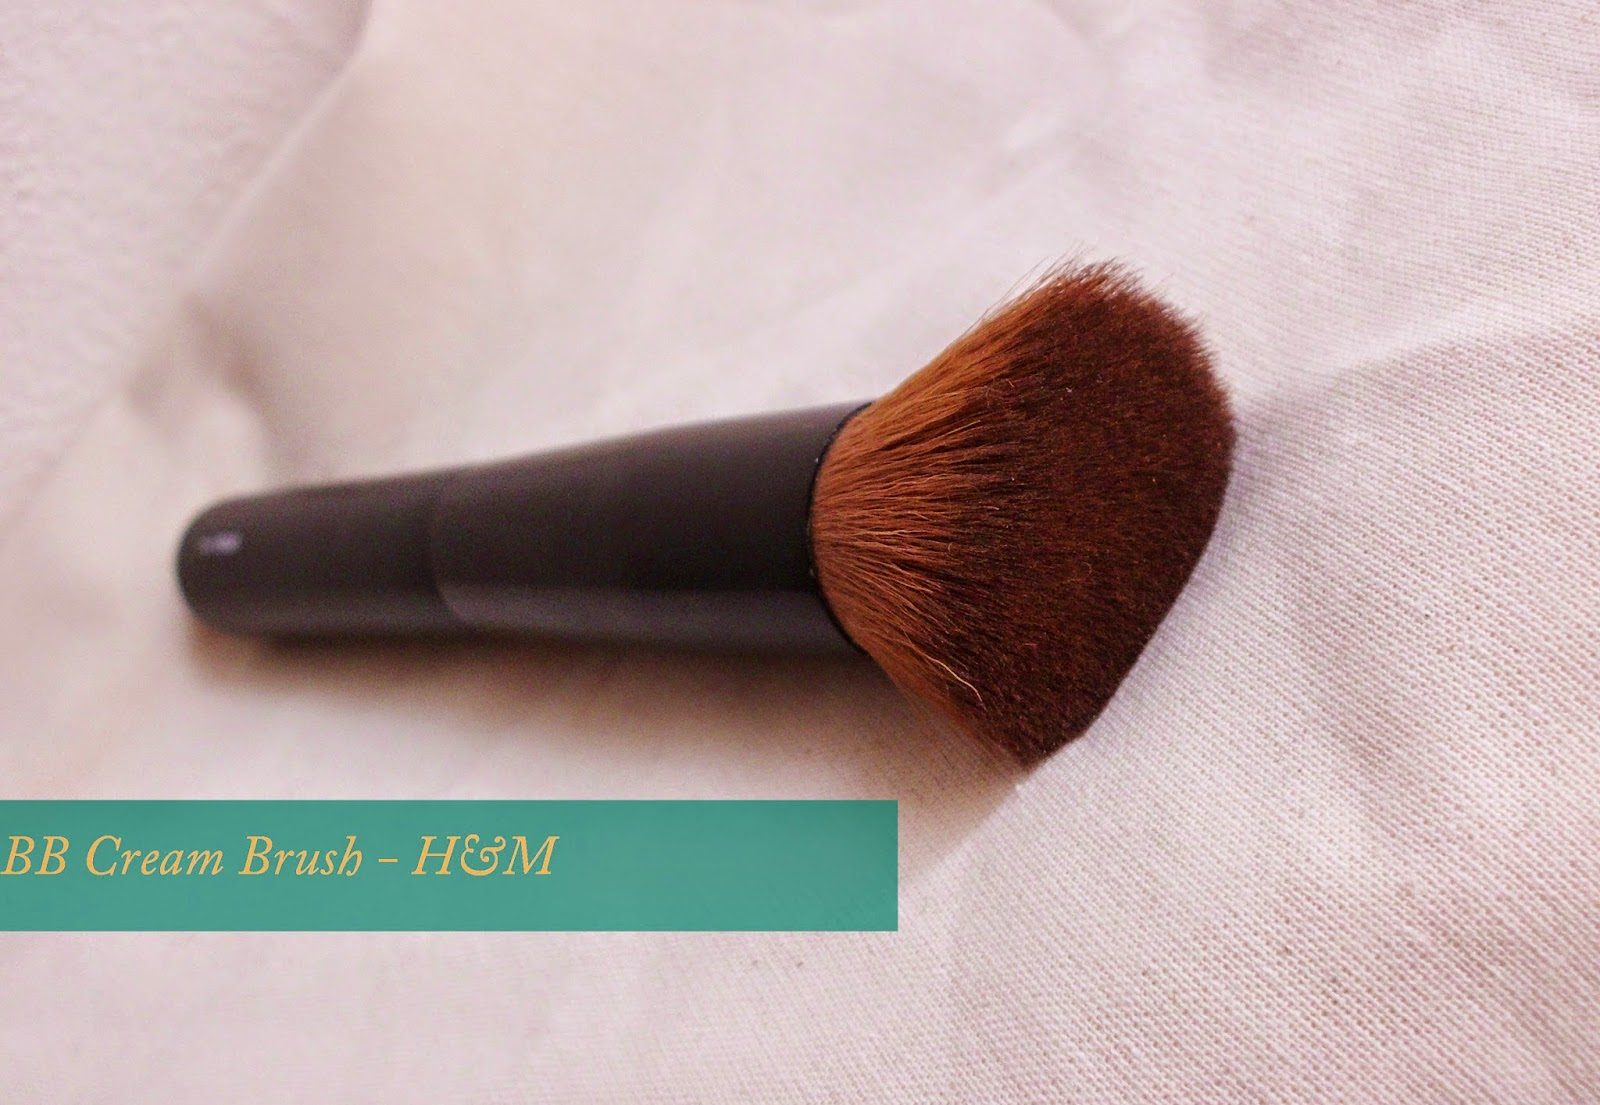 BB Cream Brush, H&M